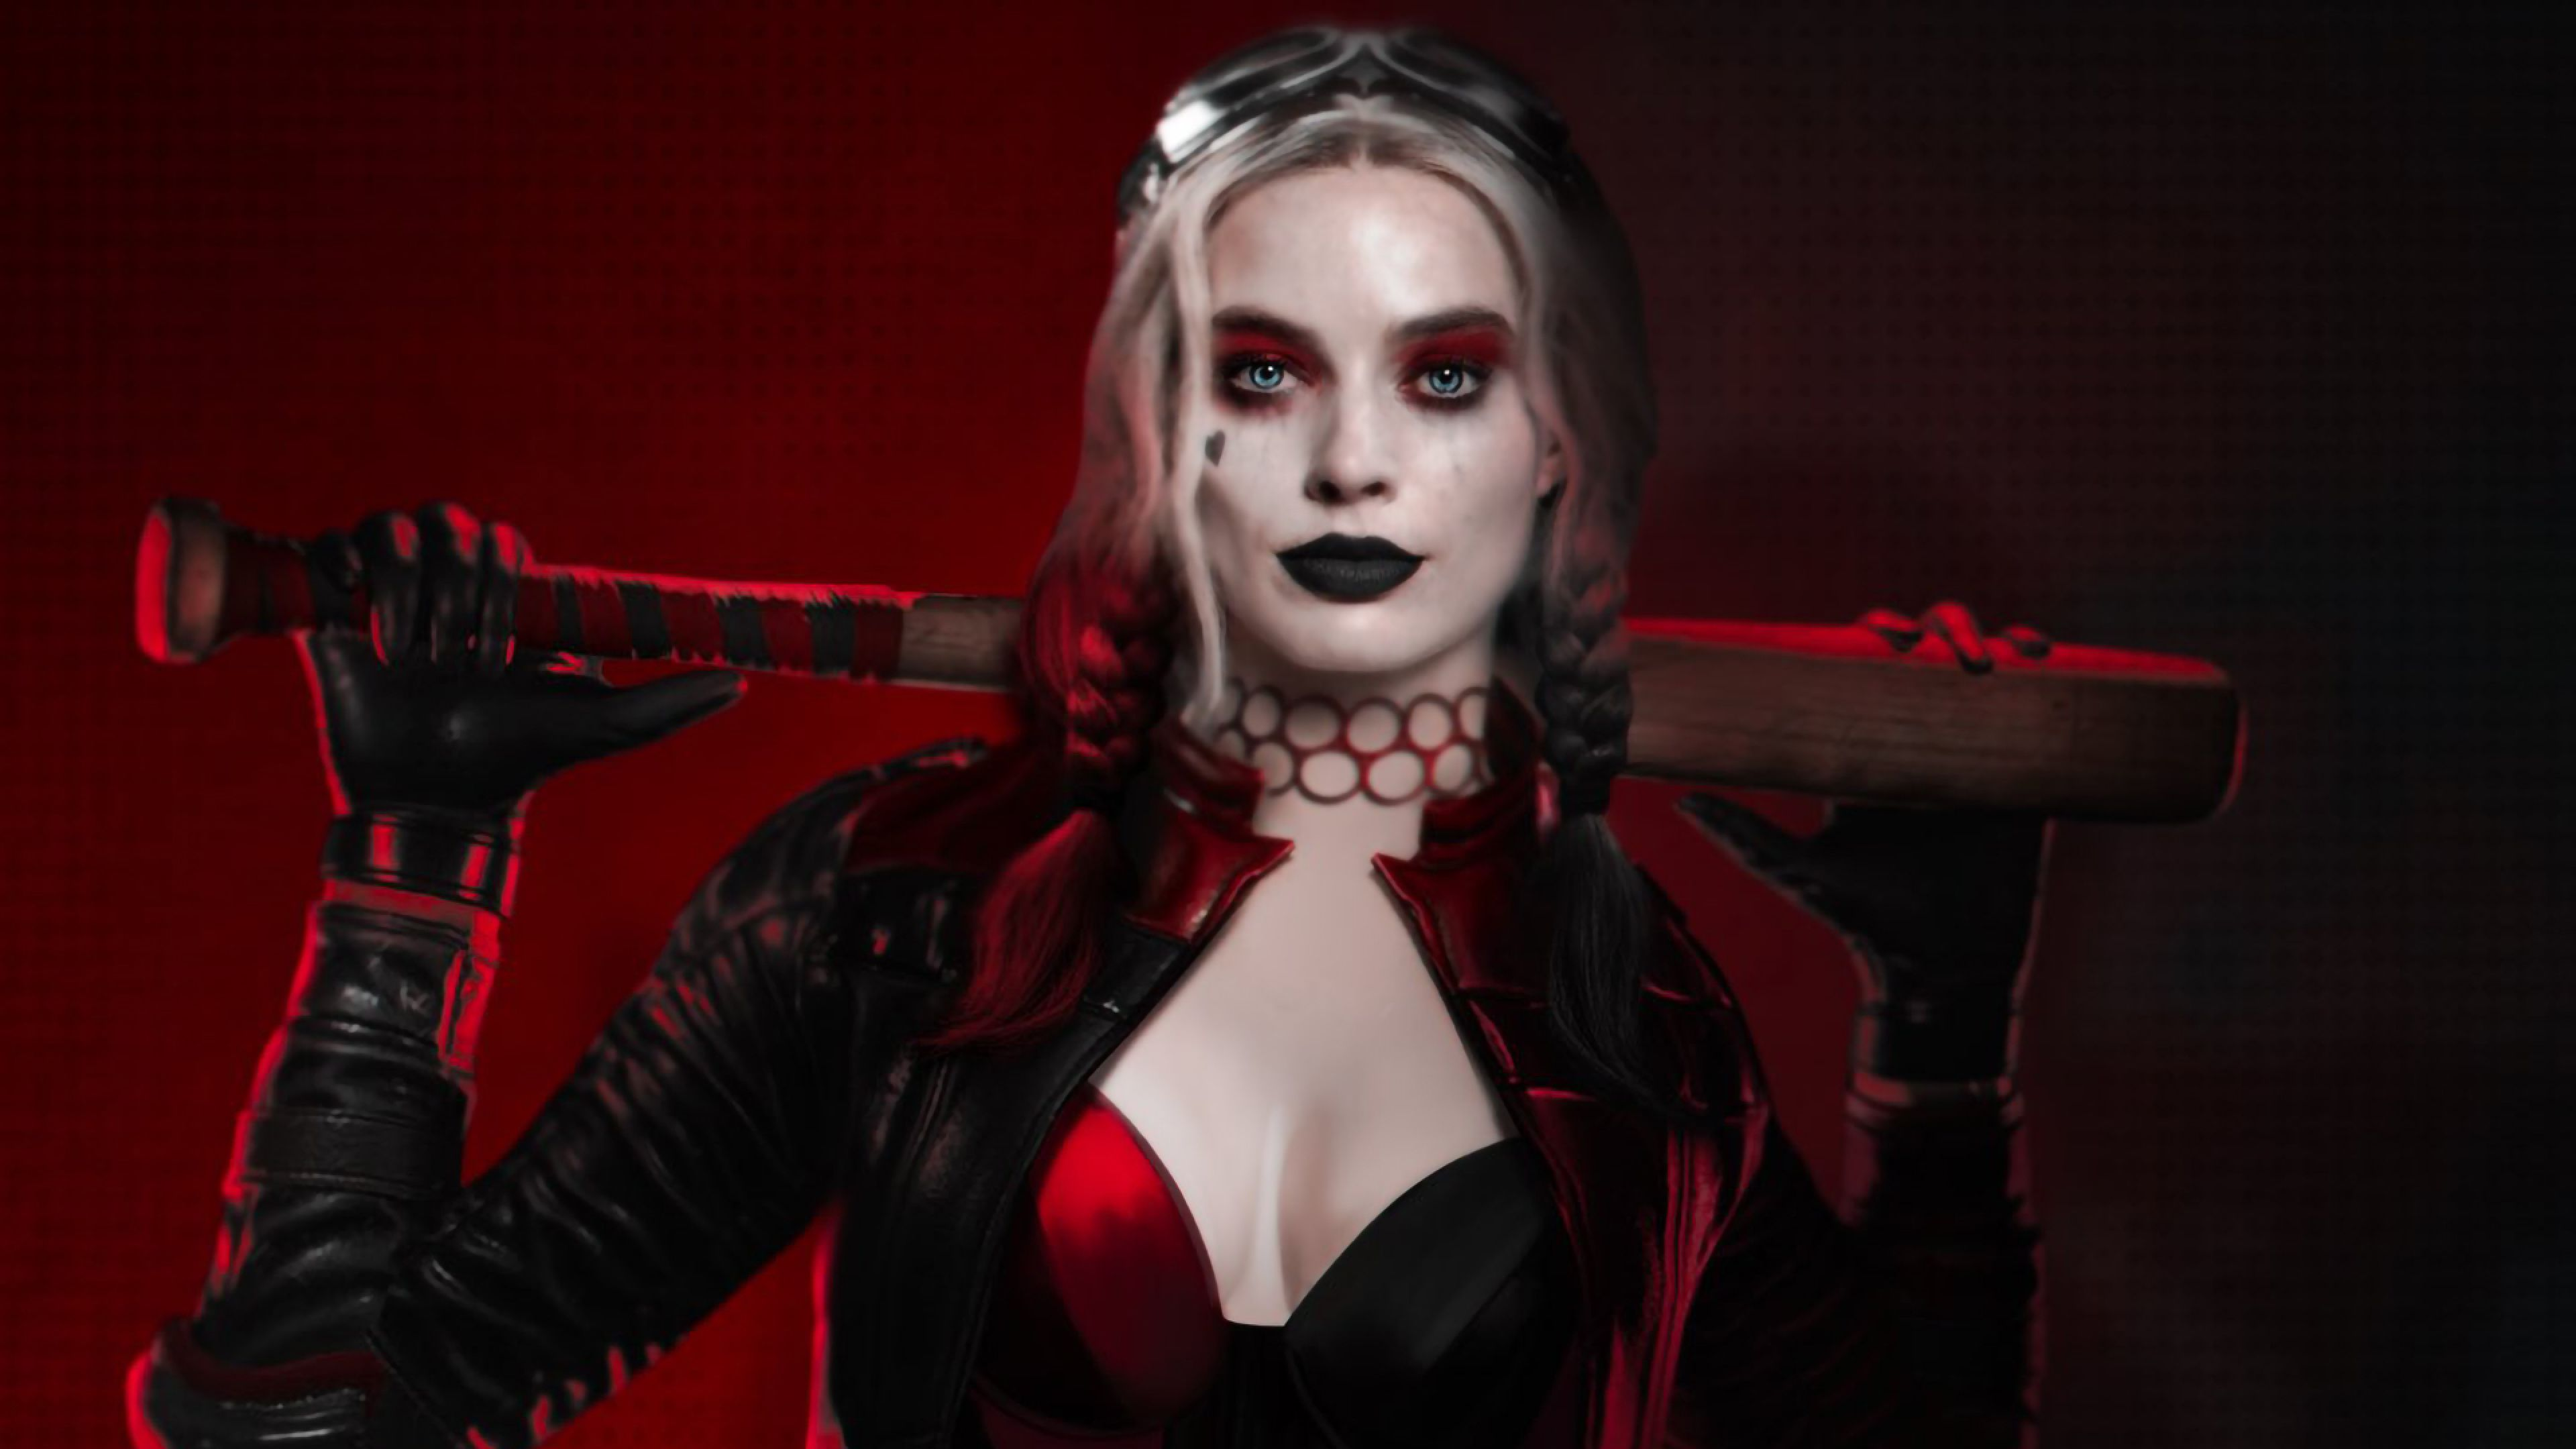 3840x2160 Margot Robbie as Harley Quinn The Suicide Squad 4K Wallpaper, HD Movies 4K Wallpapers, Image, Photos and Backgrounds